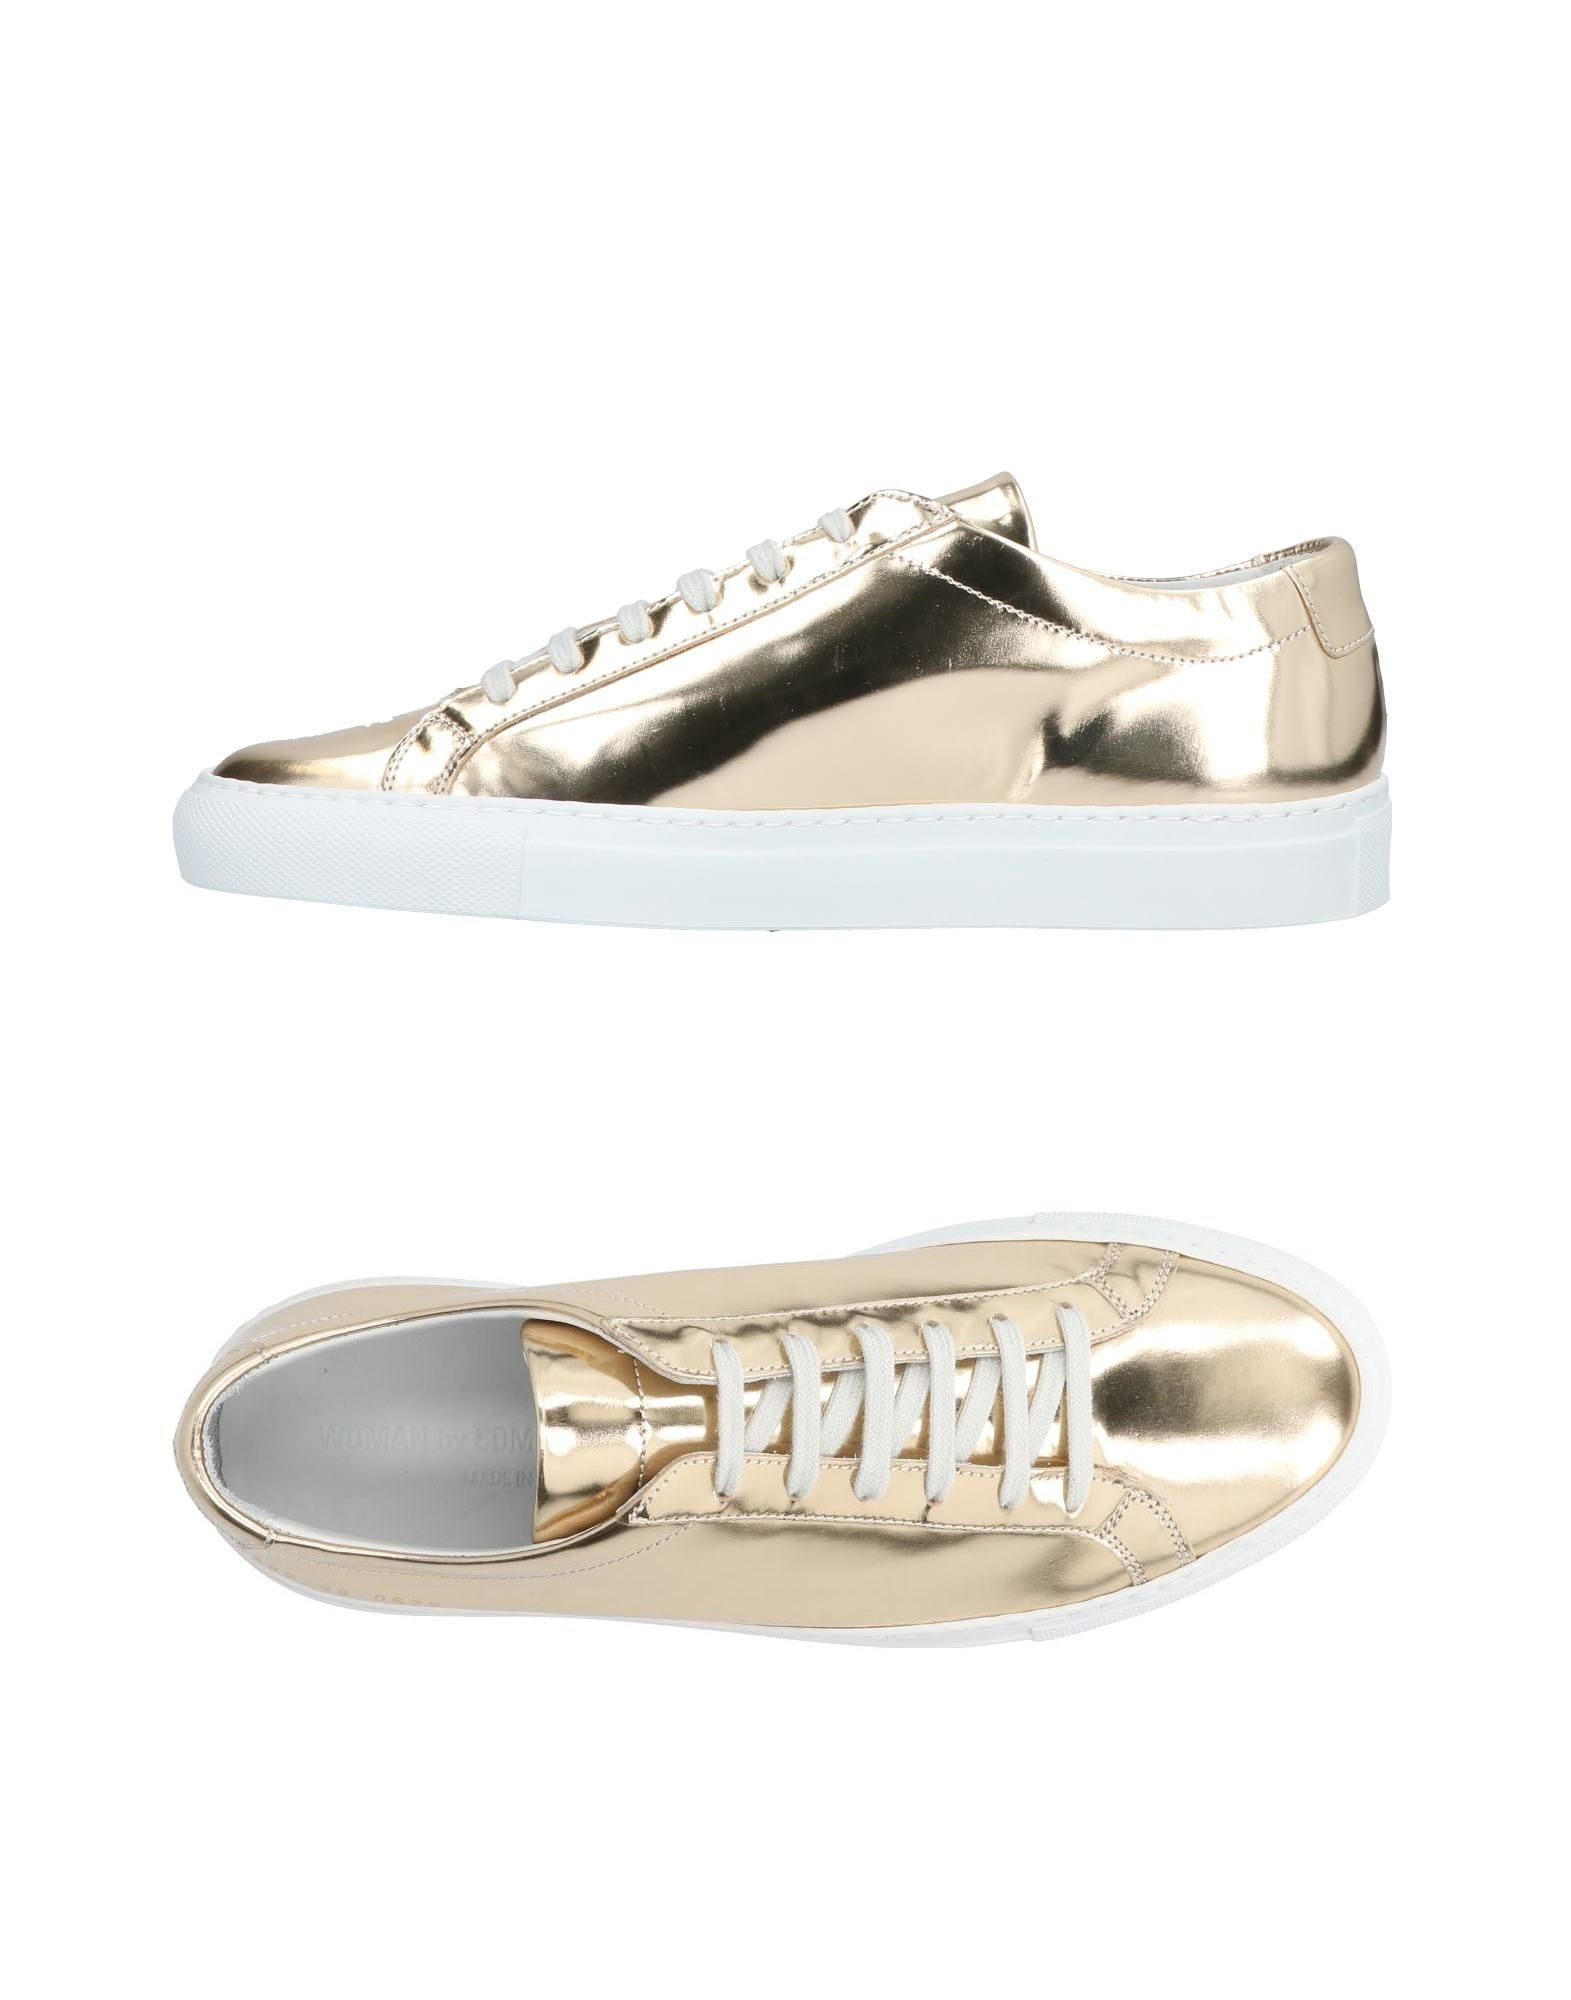 Sneakers Common Projects Femme - Sneakers Common Projects sur